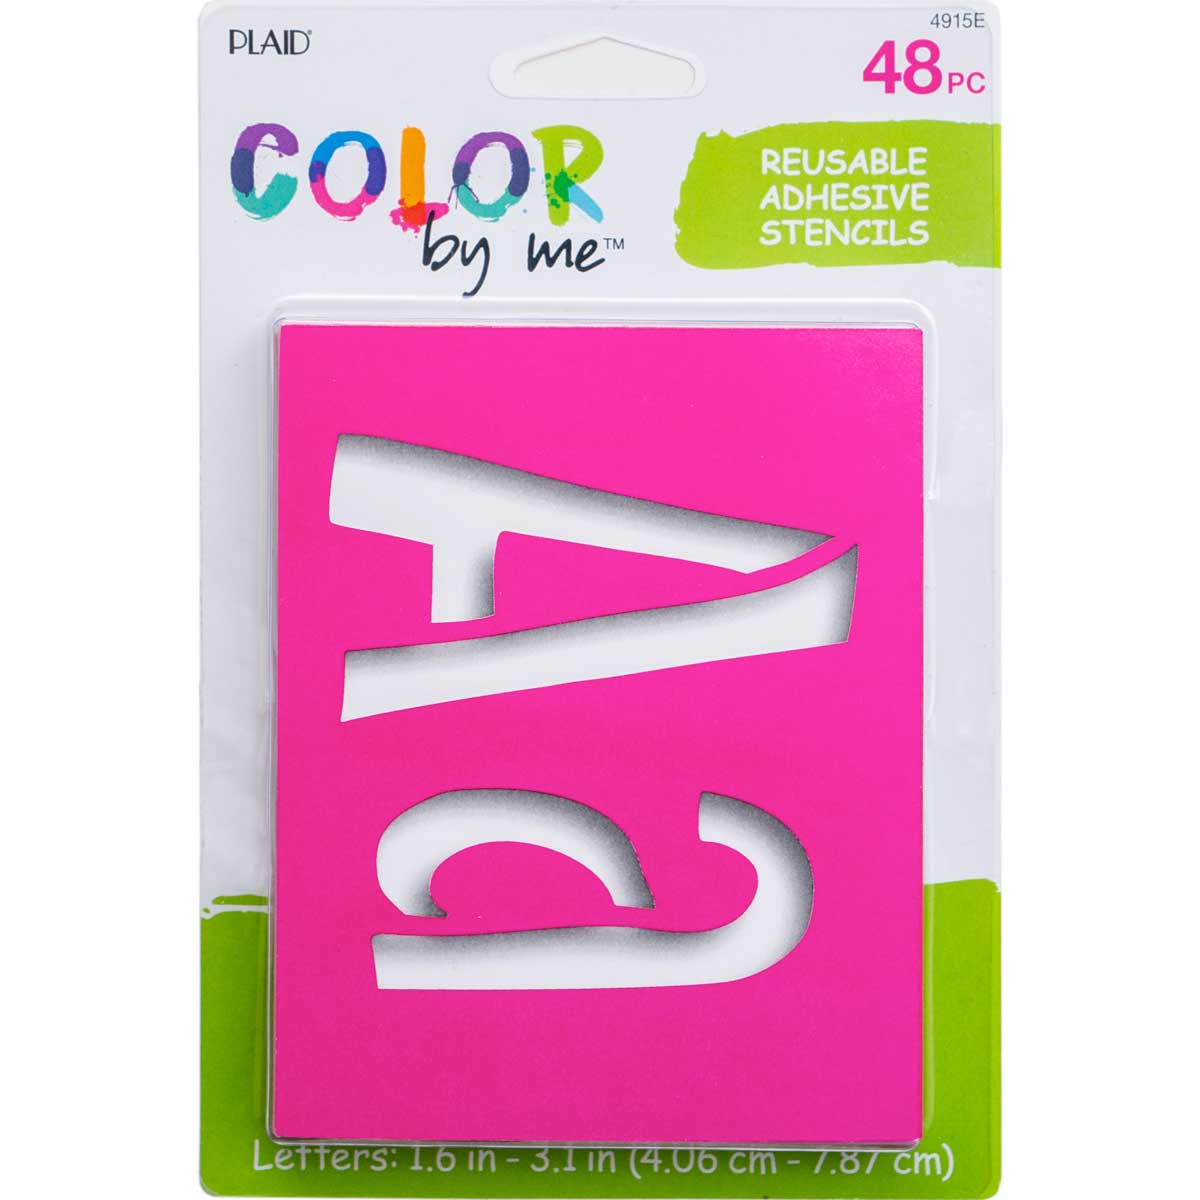 Plaid ® Color By Me™ Adhesive Stencils - Sweets Letters